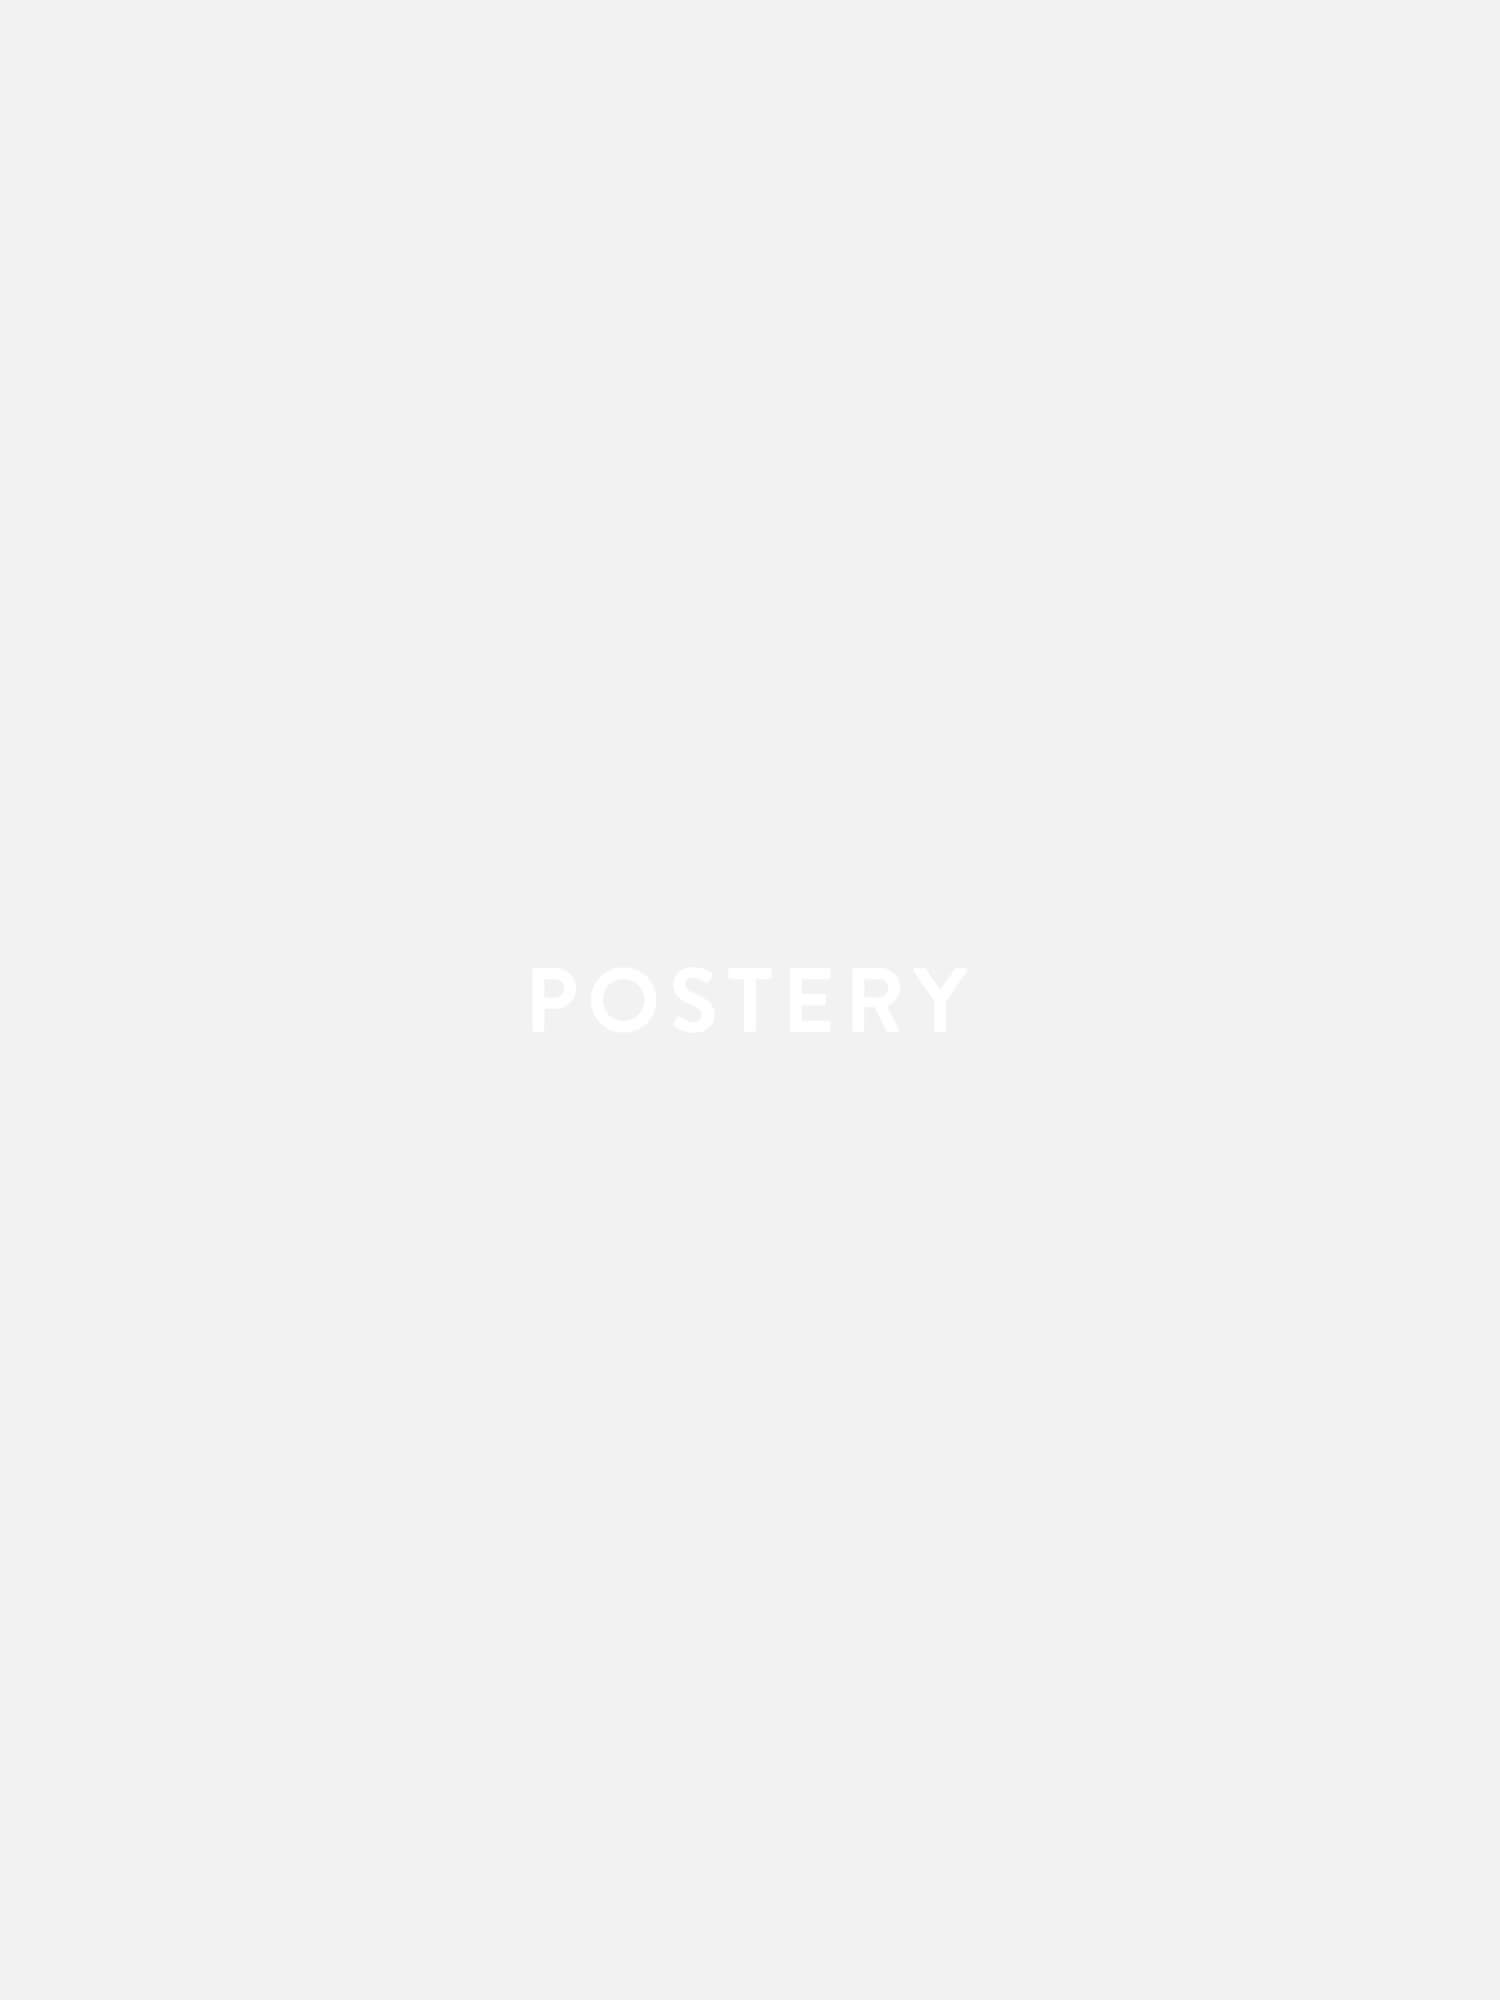 Palm BW Poster